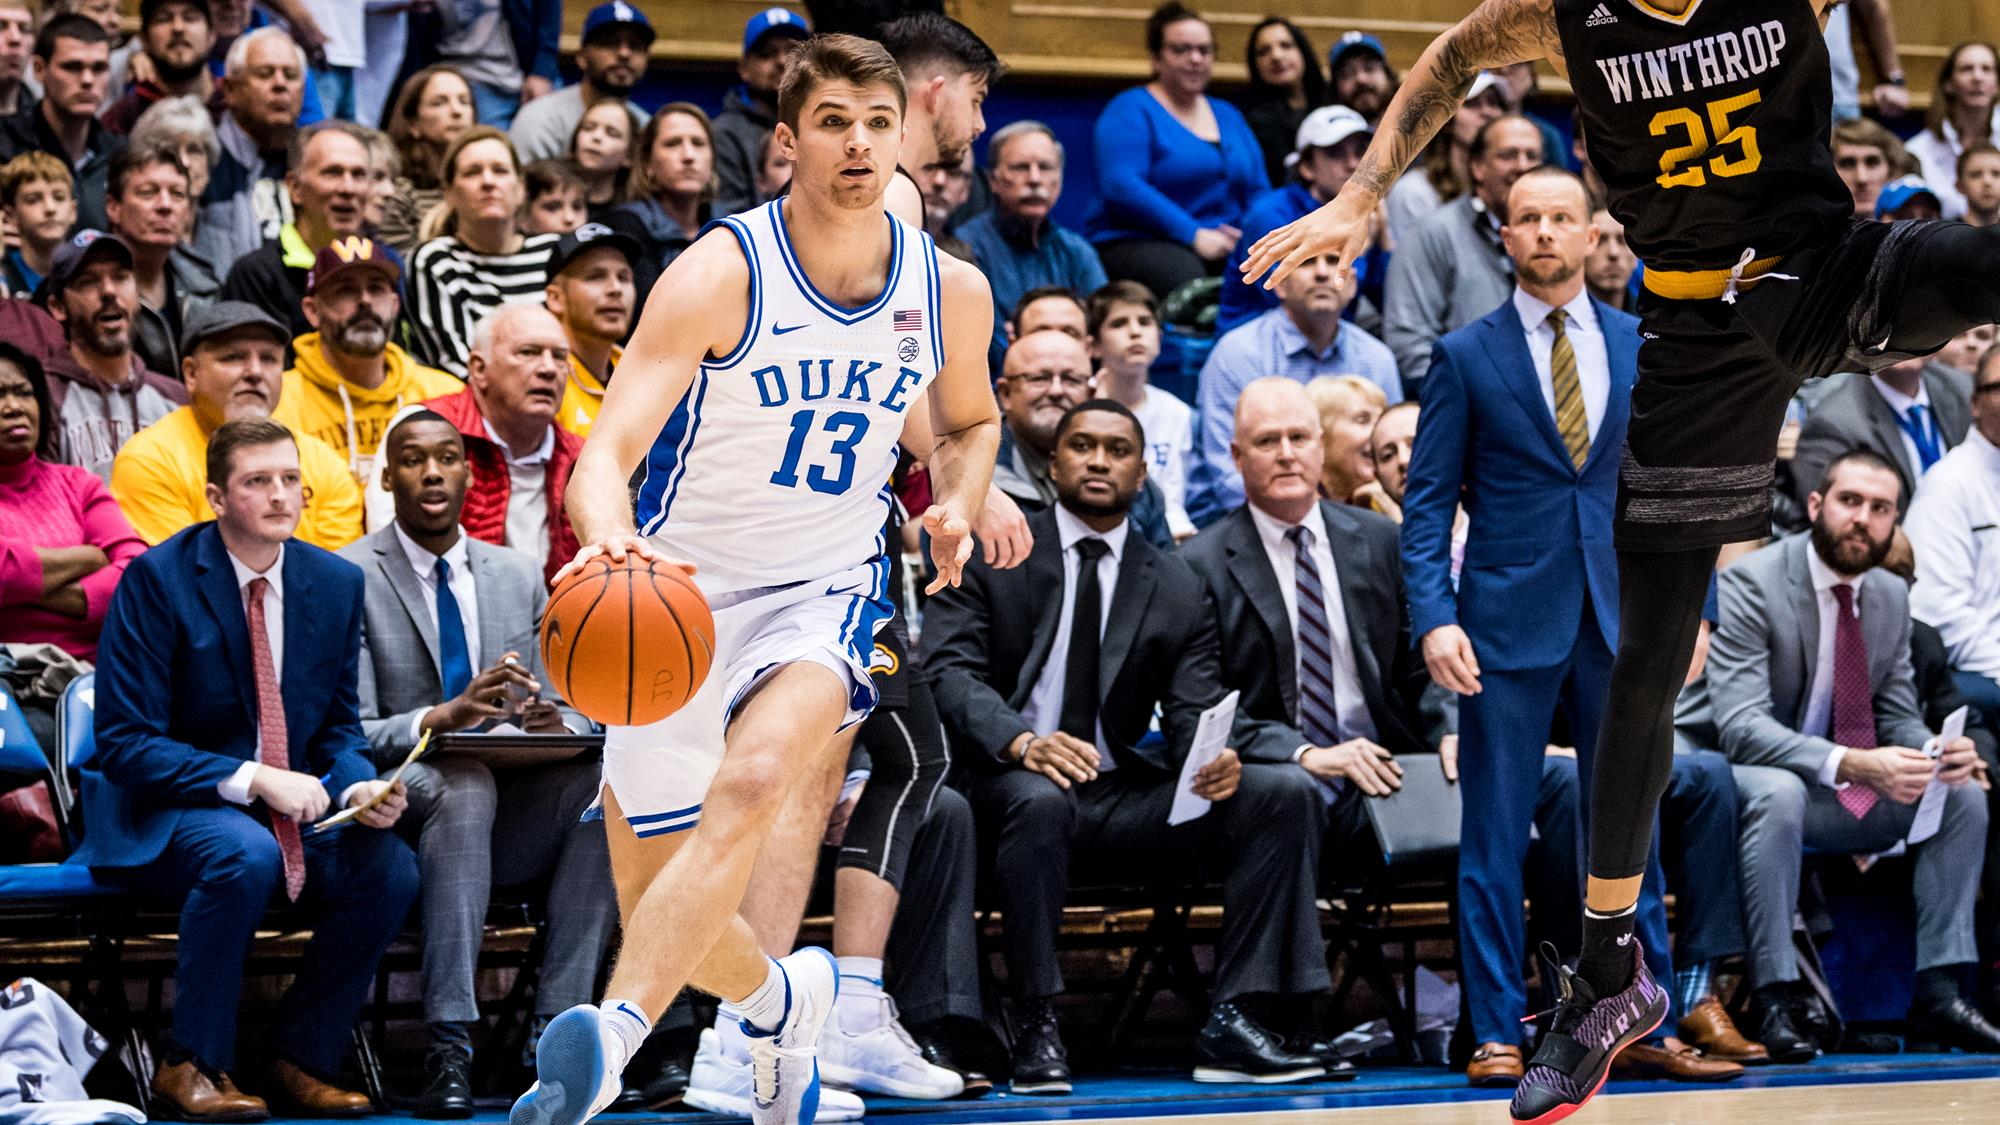 Blue Devils Pull Away Late Against Winthrop 83-70